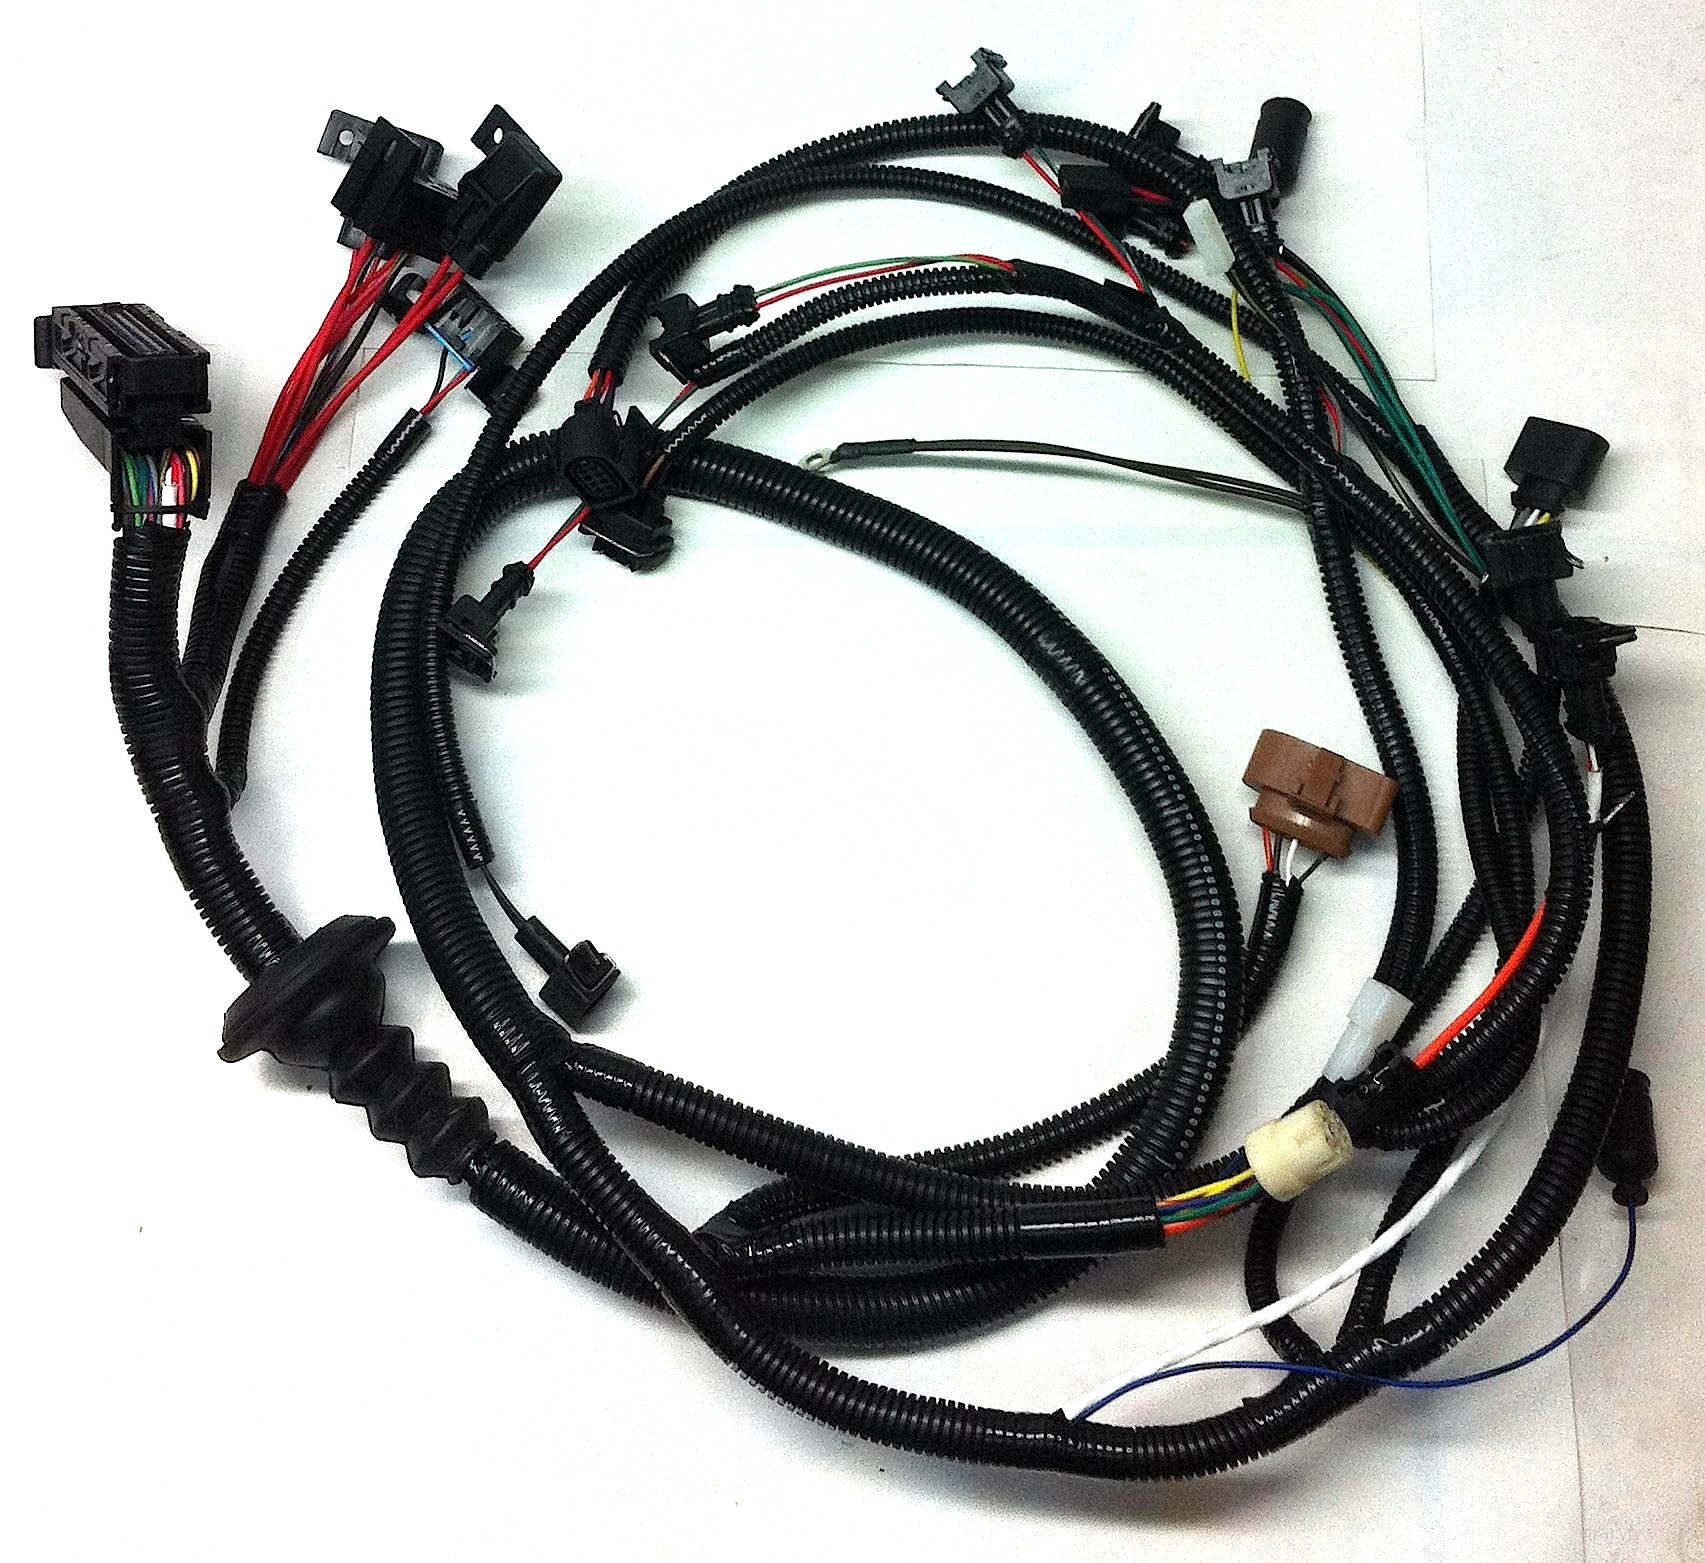 Wiring_Harness_2LR 2lr tiico conversion wiring harness foreign auto & supply, inc  at readyjetset.co